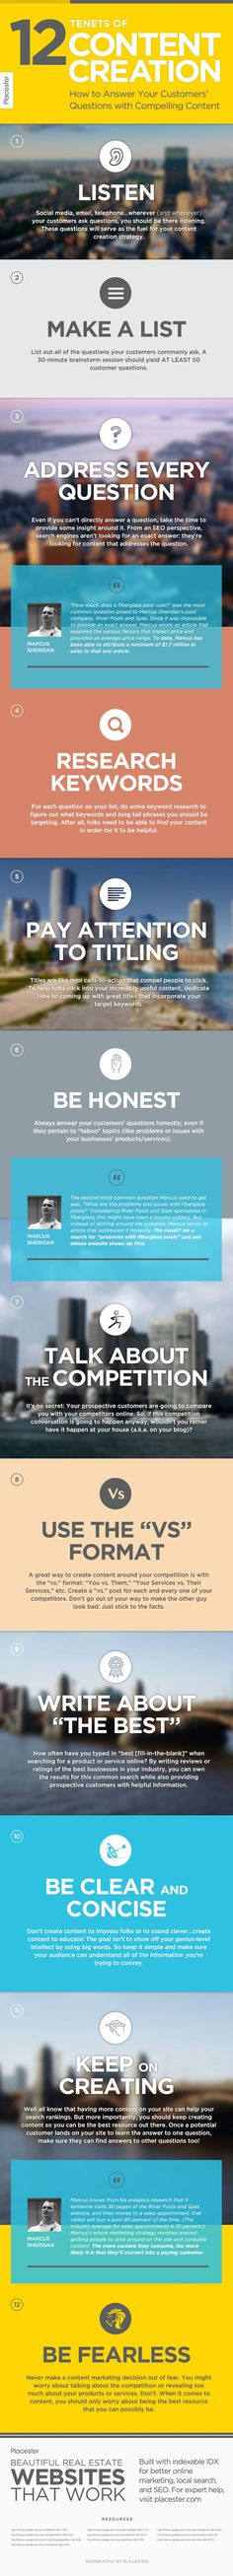 12 Tenets Of Content Creation - How To Answer Your Customers' Questions With Compelling Content #infographics